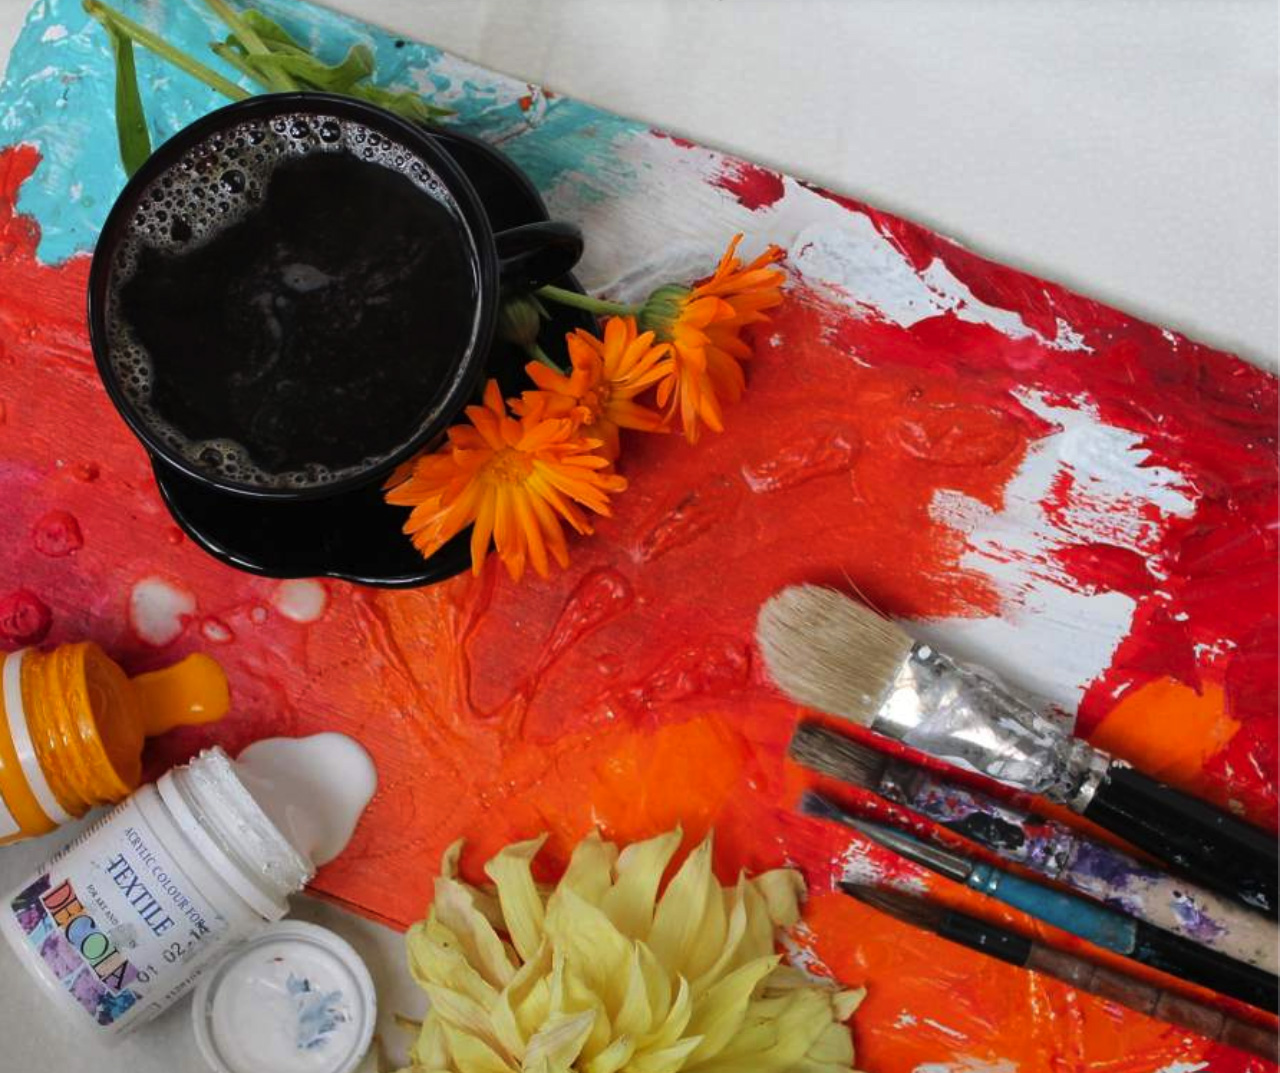 A Course Teaching Art And Craft Enthusiasts How To Make More Money Selling Their Artworks.